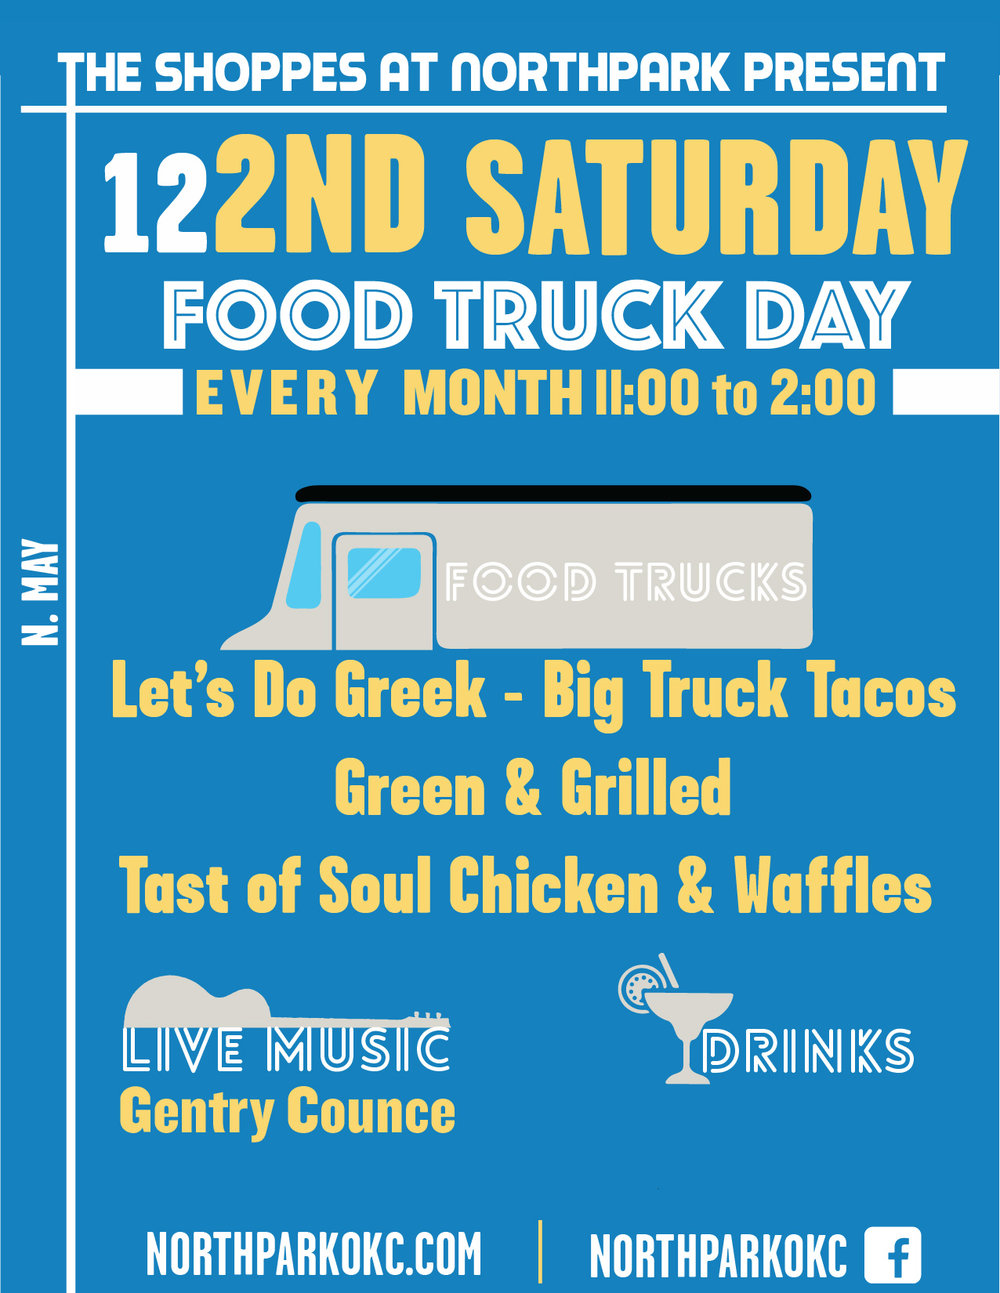 food-truck-day-flyer-02.jpg